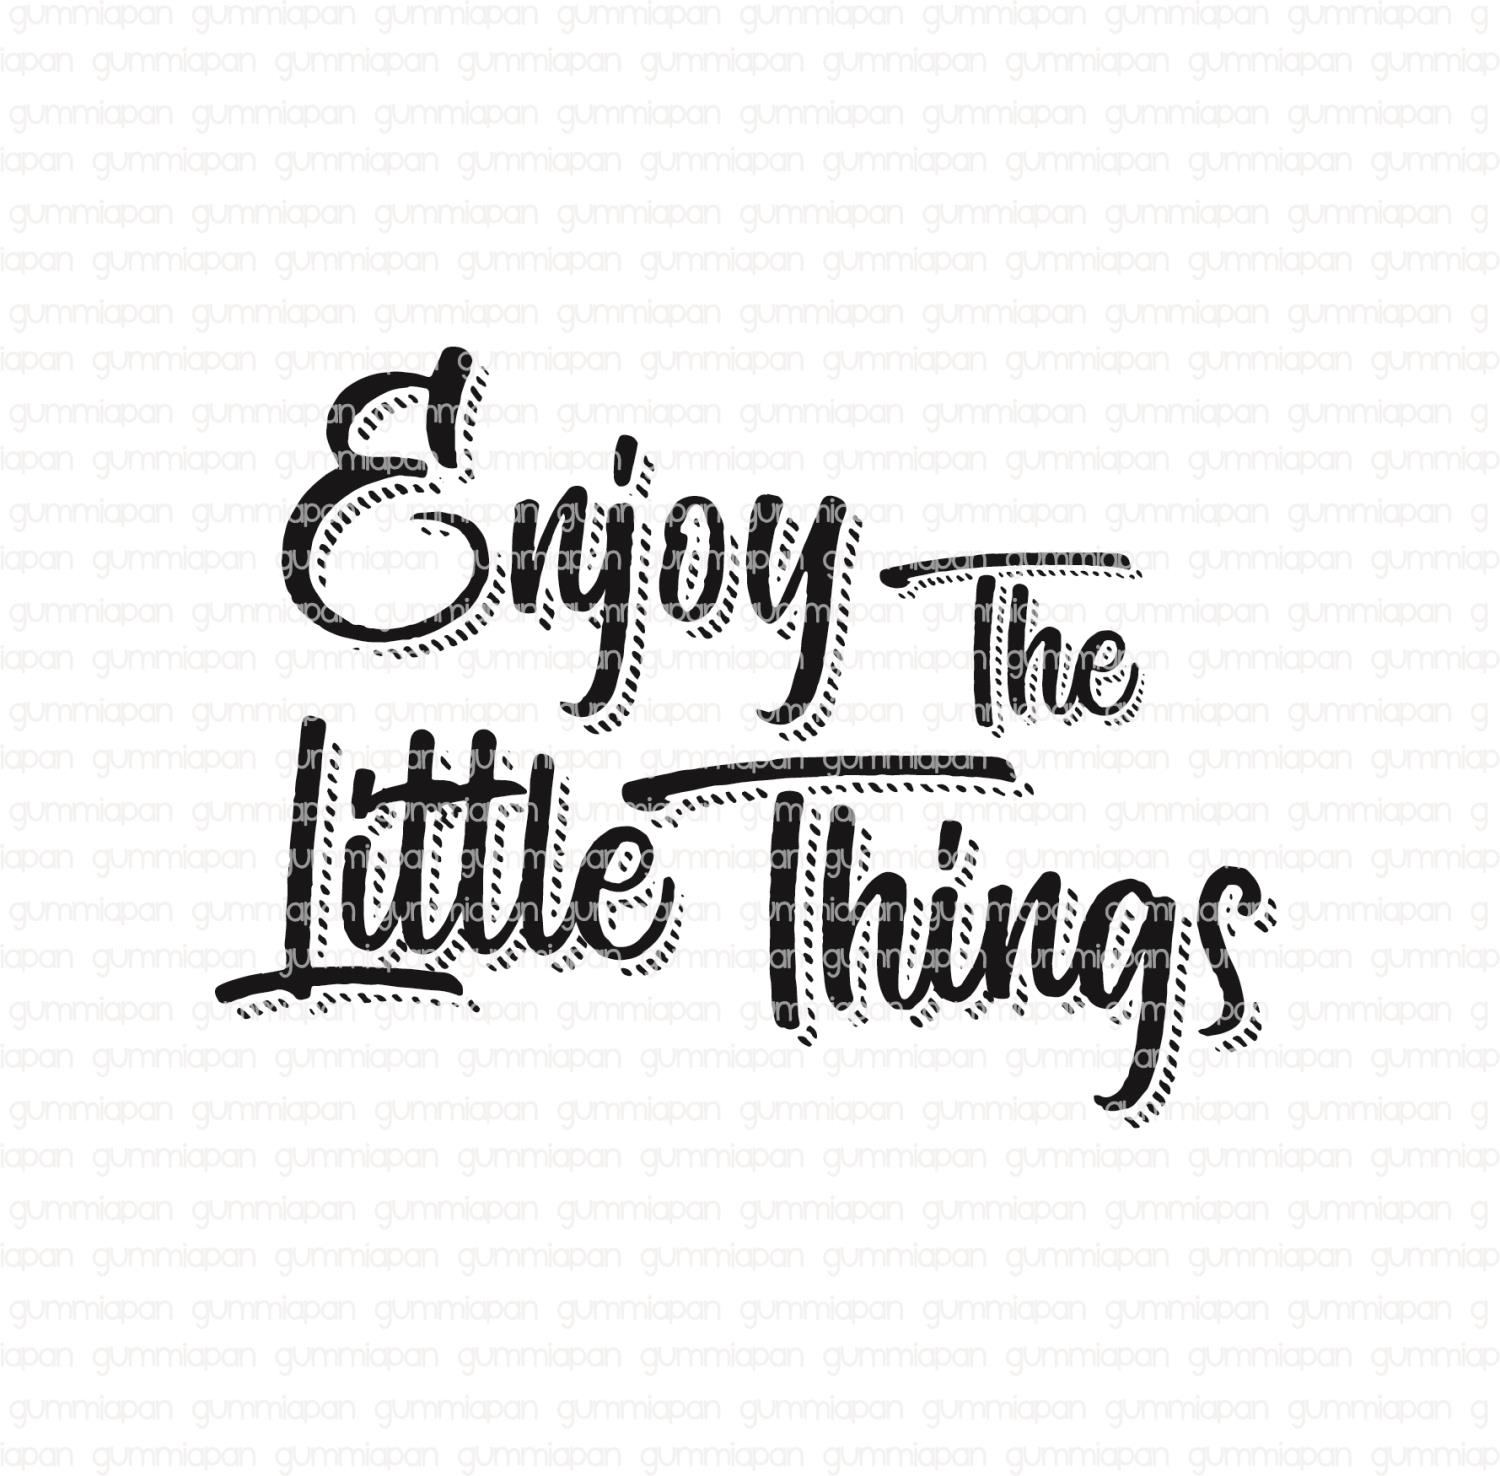 Gummiapan -Enjoy The Little Things -  umontert GummiStempel